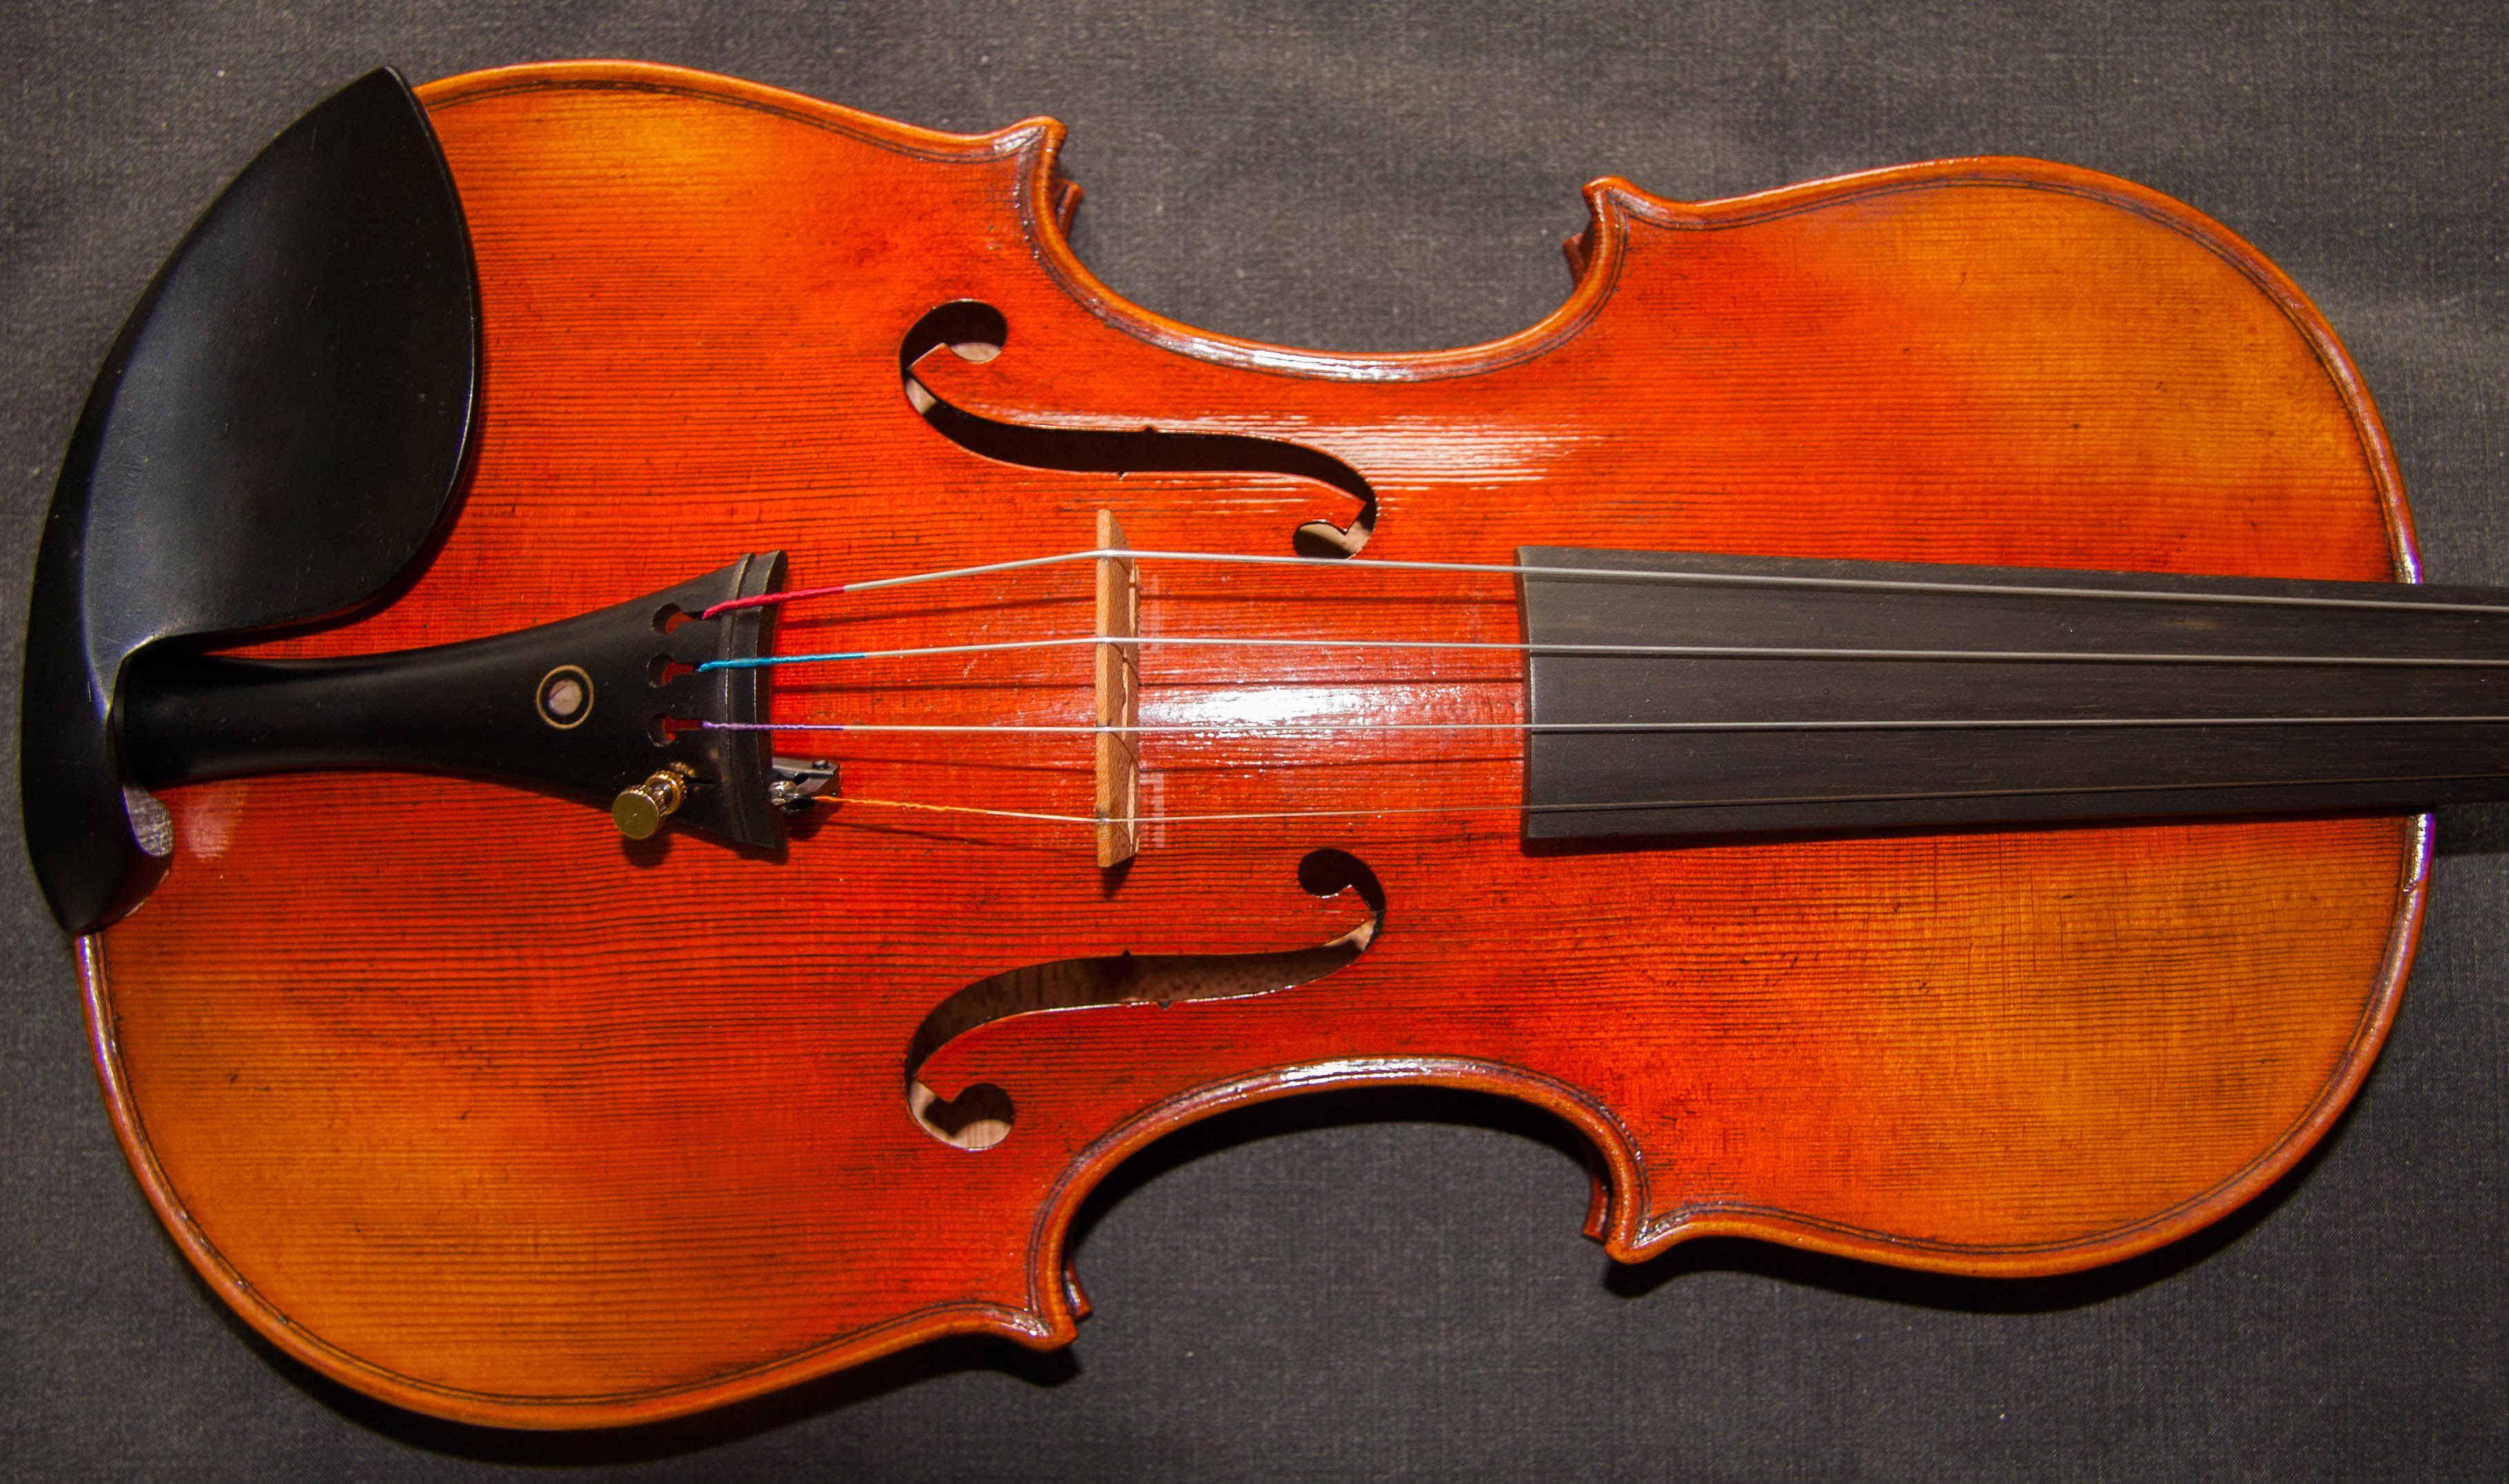 Do the best violins made by Stradivarius